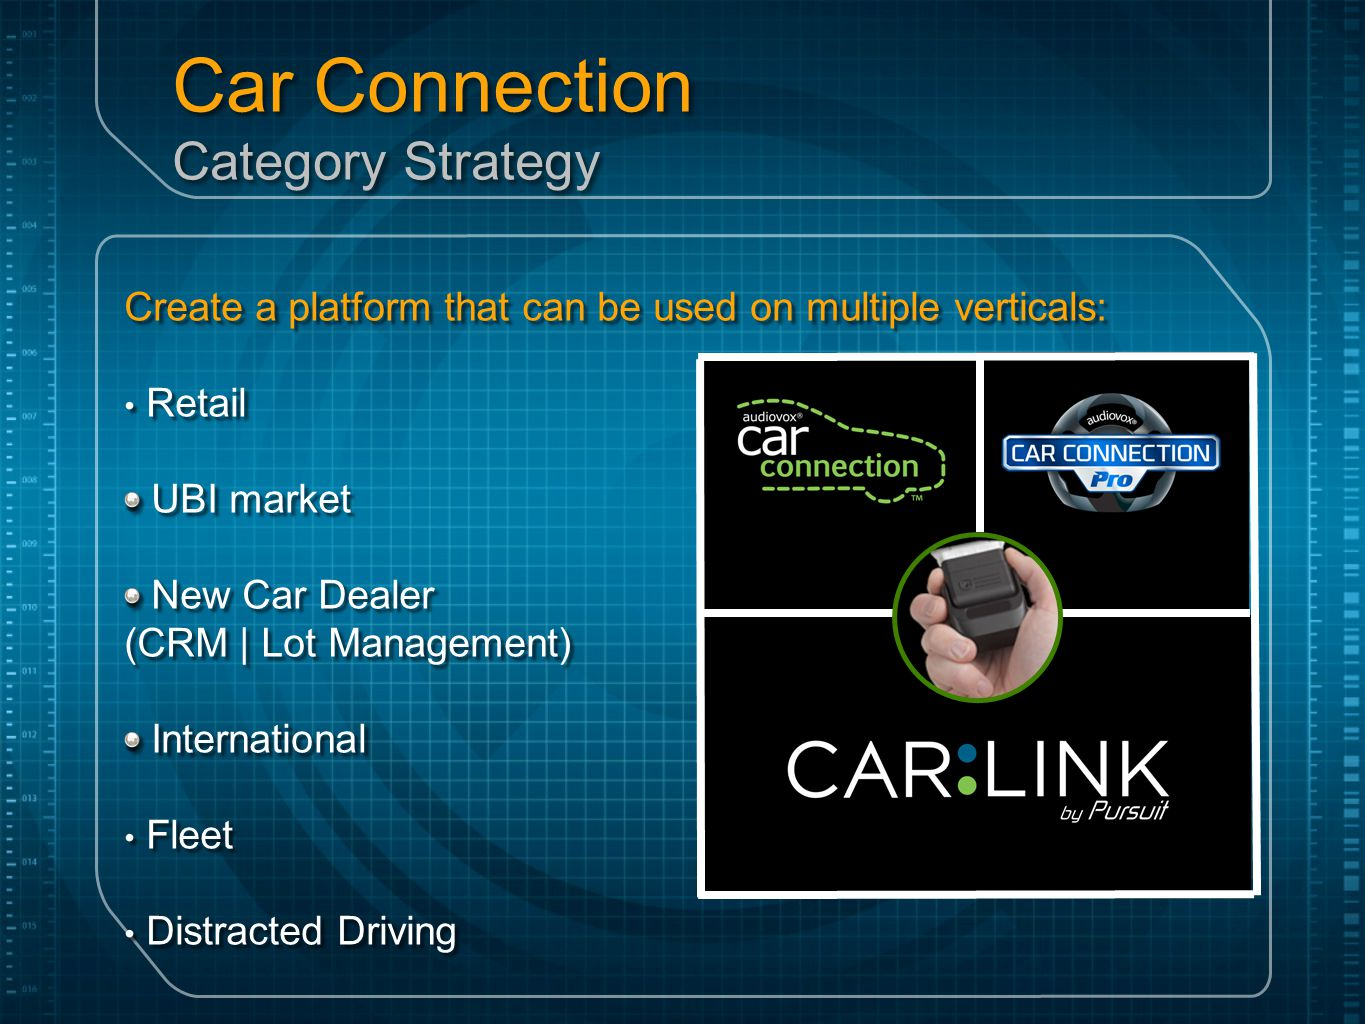 Car Connection Category Strategy